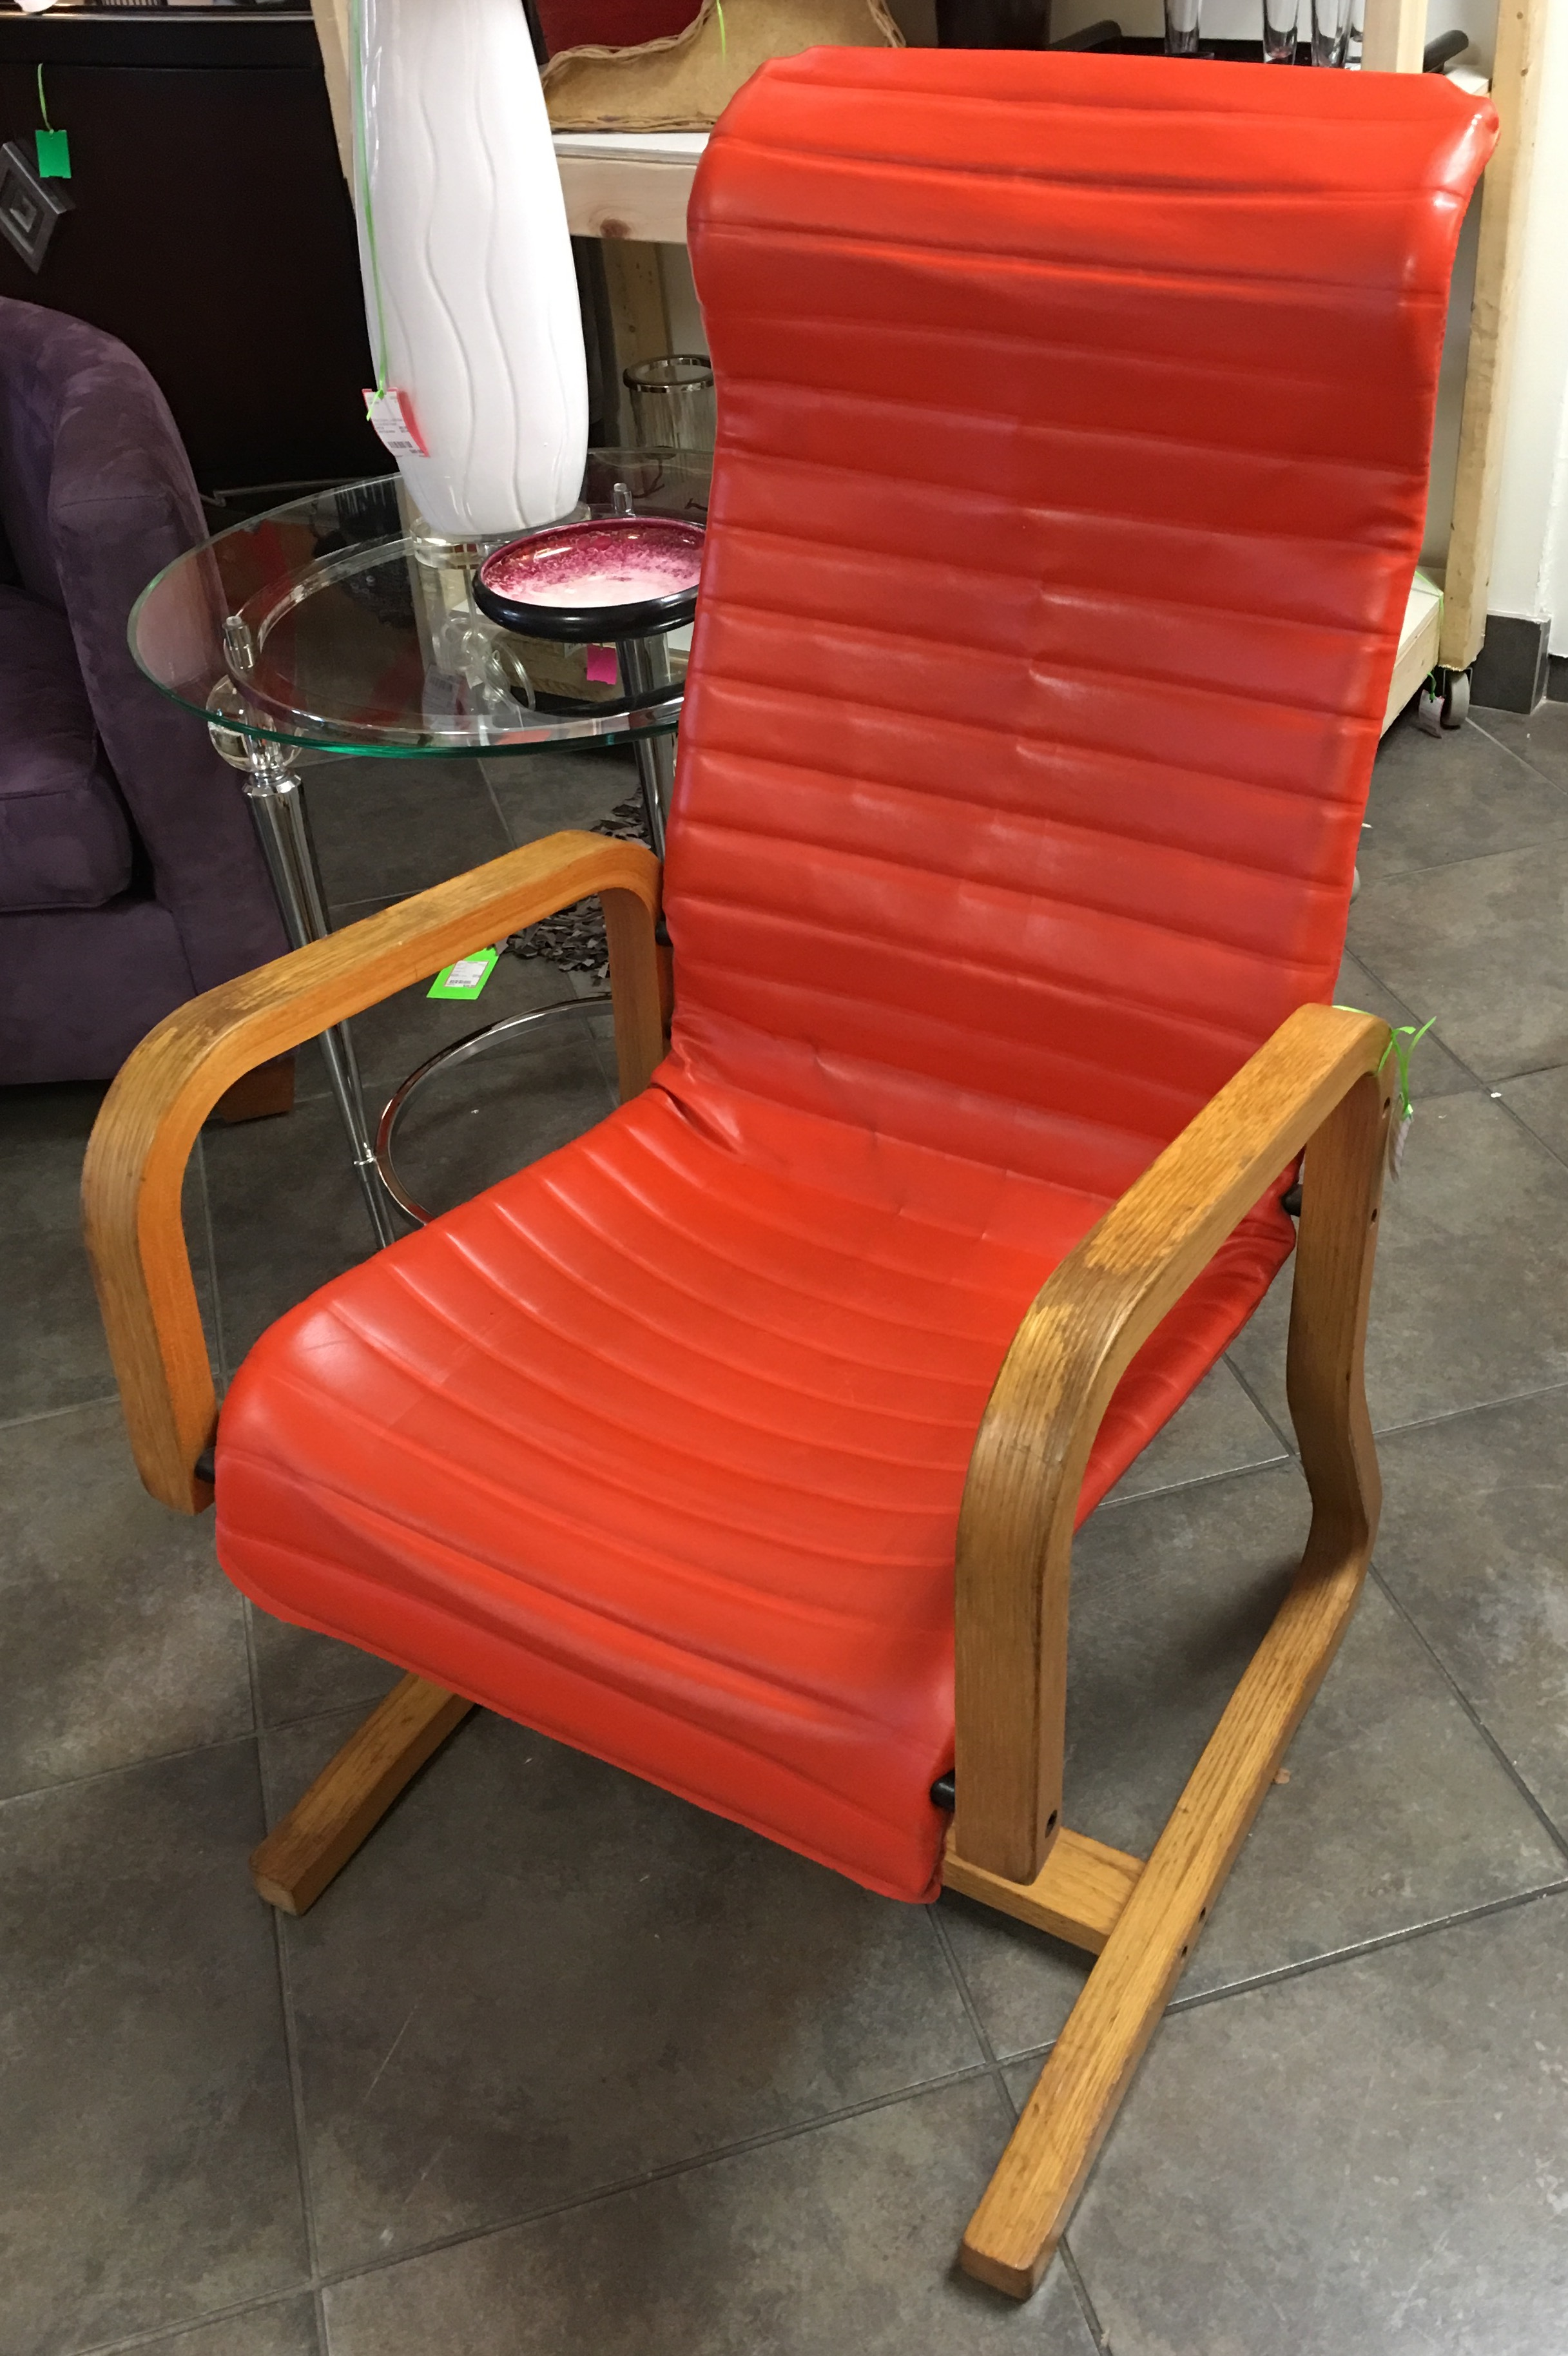 Consignment furniture consignment furniture orange chair for Furniture consignment